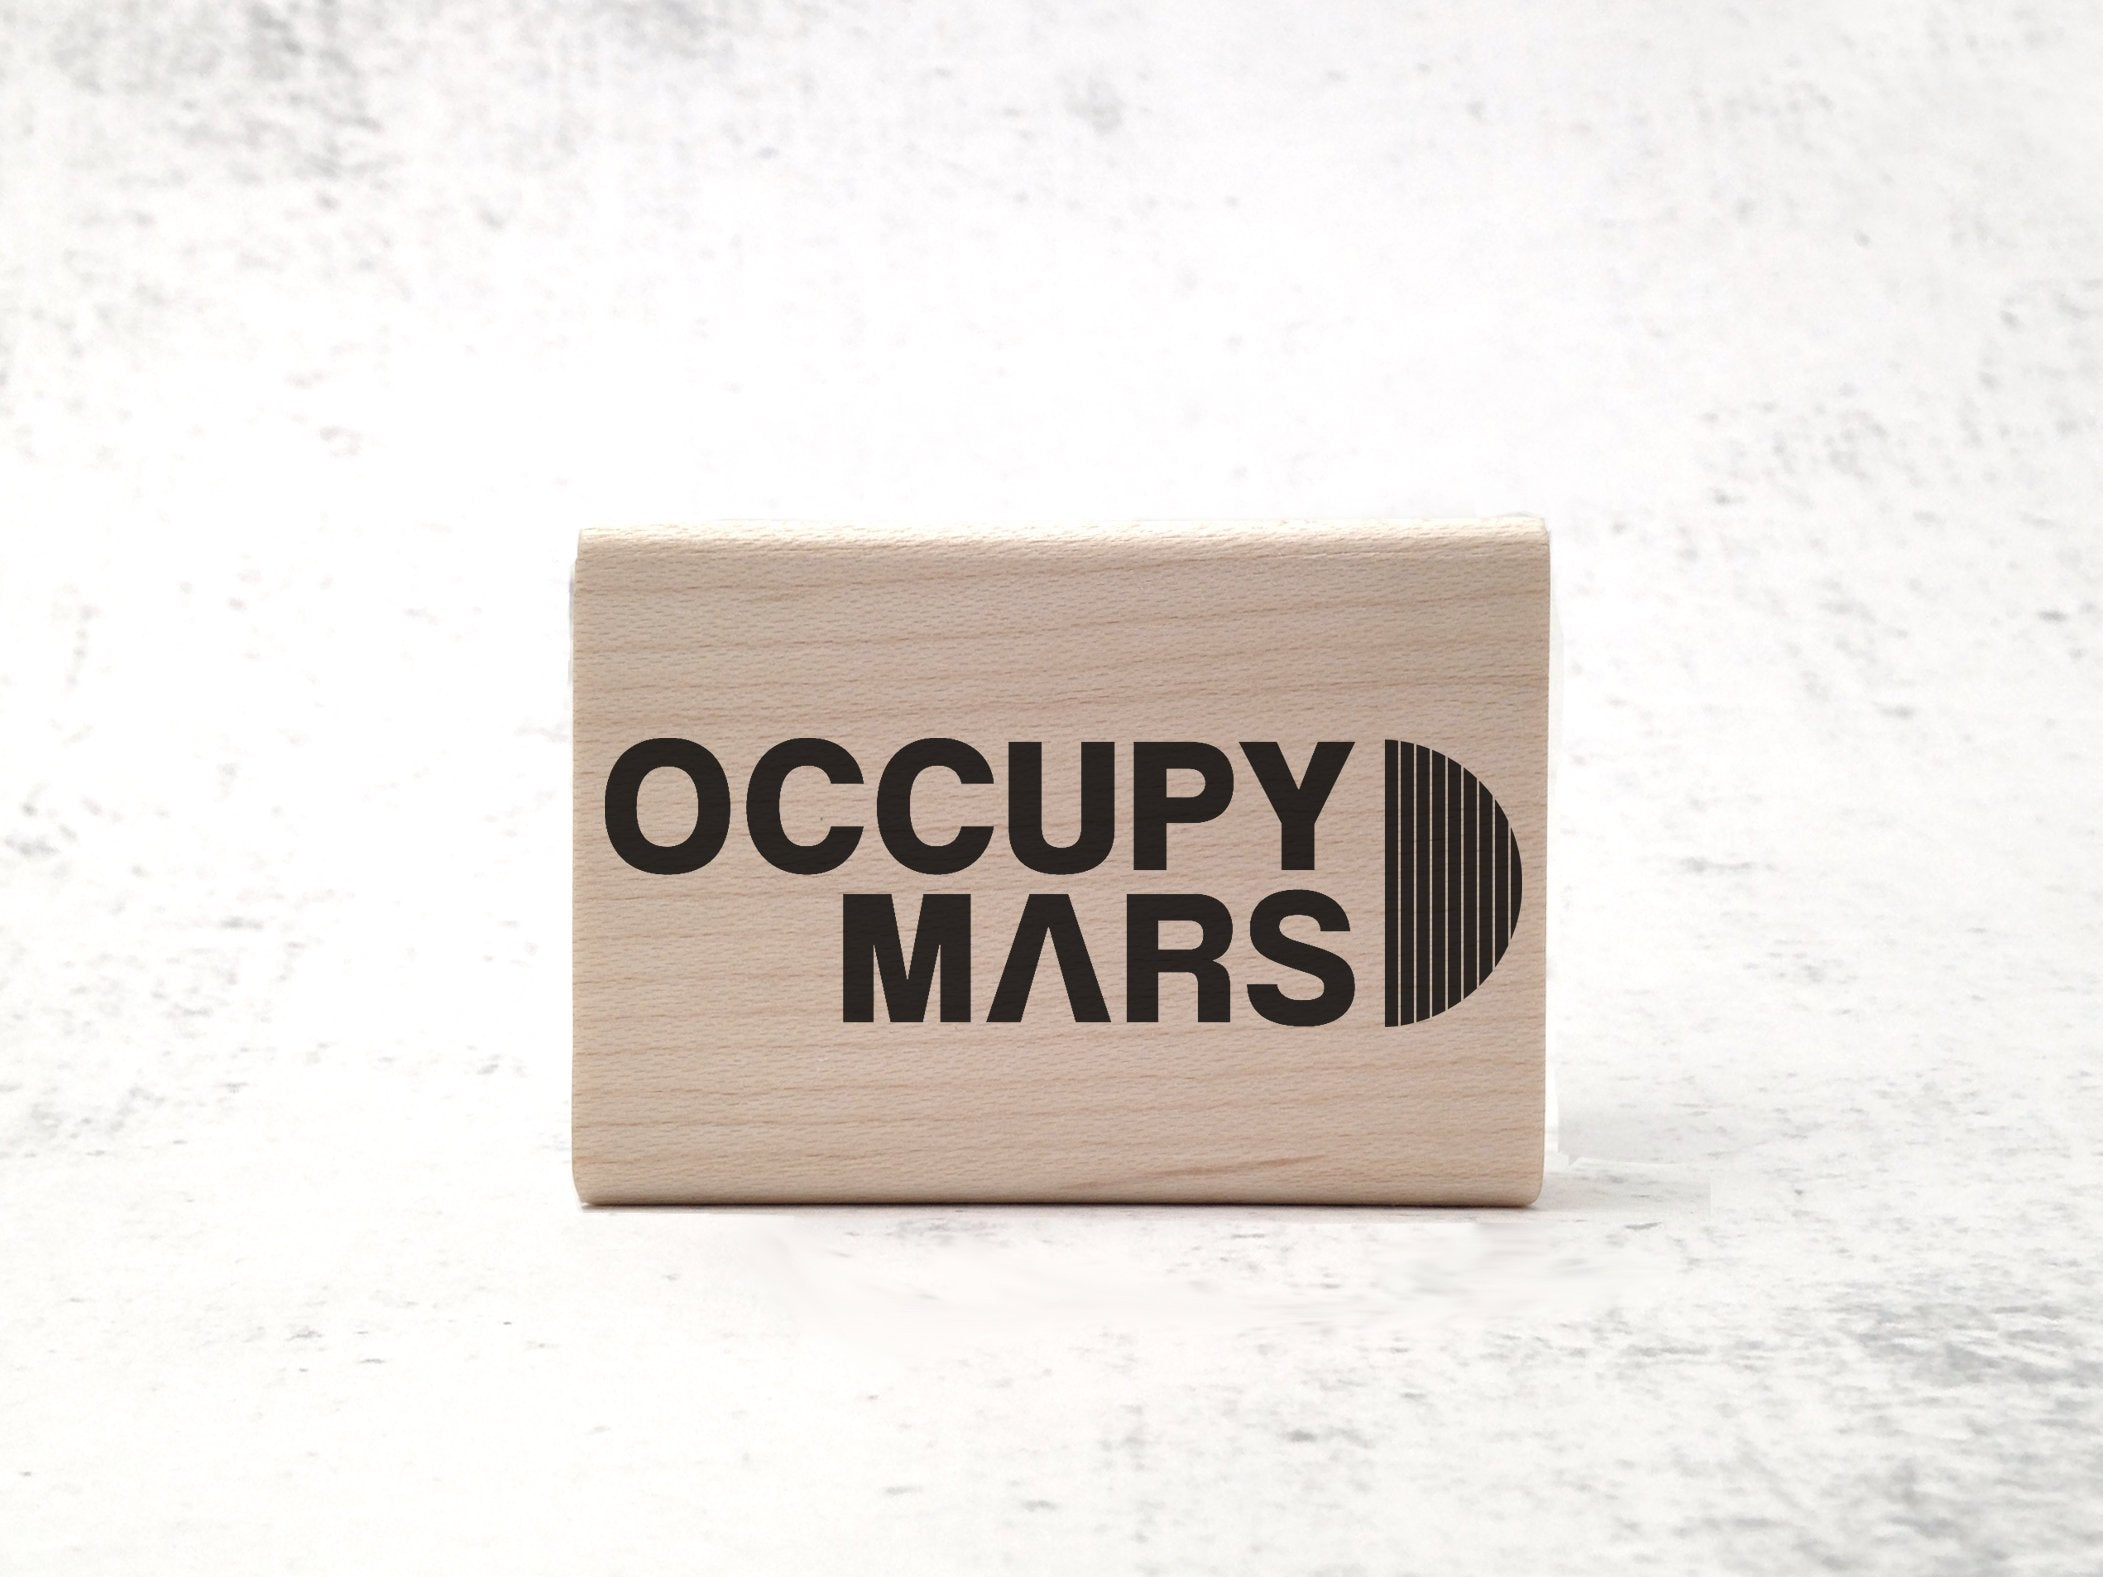 Occupy Mars - Space Logo & Astronomy Rubber Stamp - Martian Astronaut Stamp